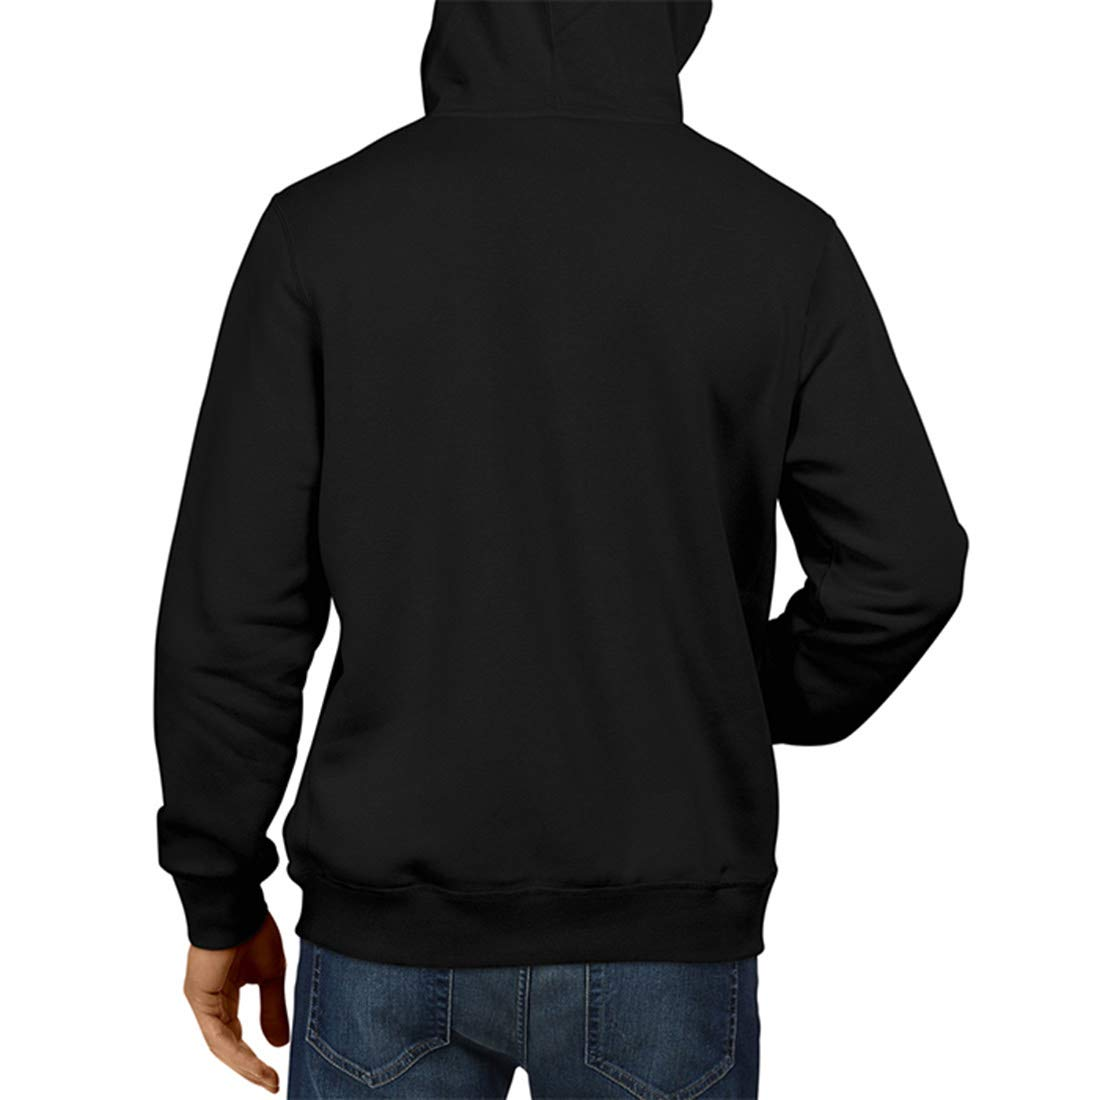 9b18c47e4 Fashion And Youth India Flag Black -Hoodie: Amazon.in: Clothing &  Accessories